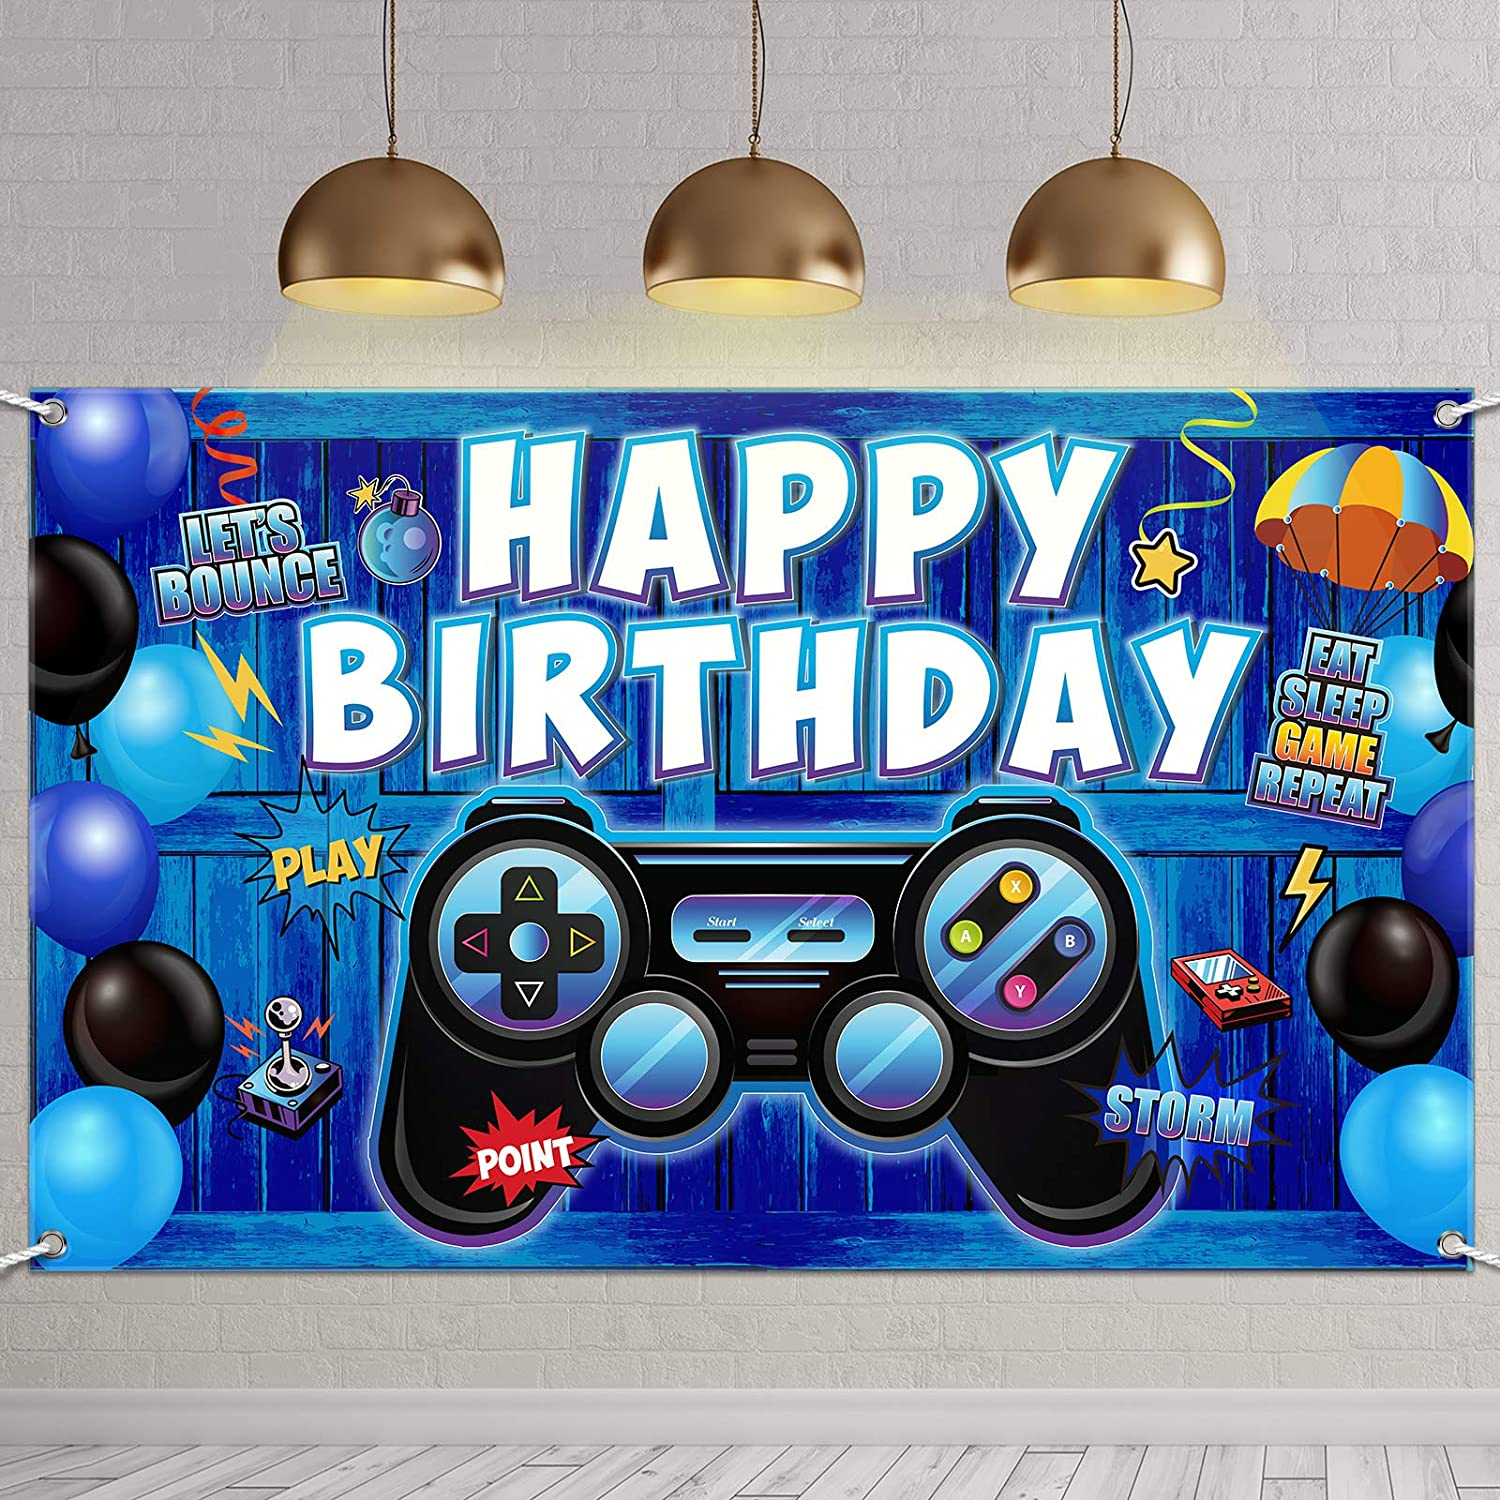 Video Game Happy Birthday Backdrop Game on Birthday Party Backdrop Banner Gaming Theme Party Photography Background Photo Props for Video Game Party Wall Decorations Supplies (Blue Wooden)